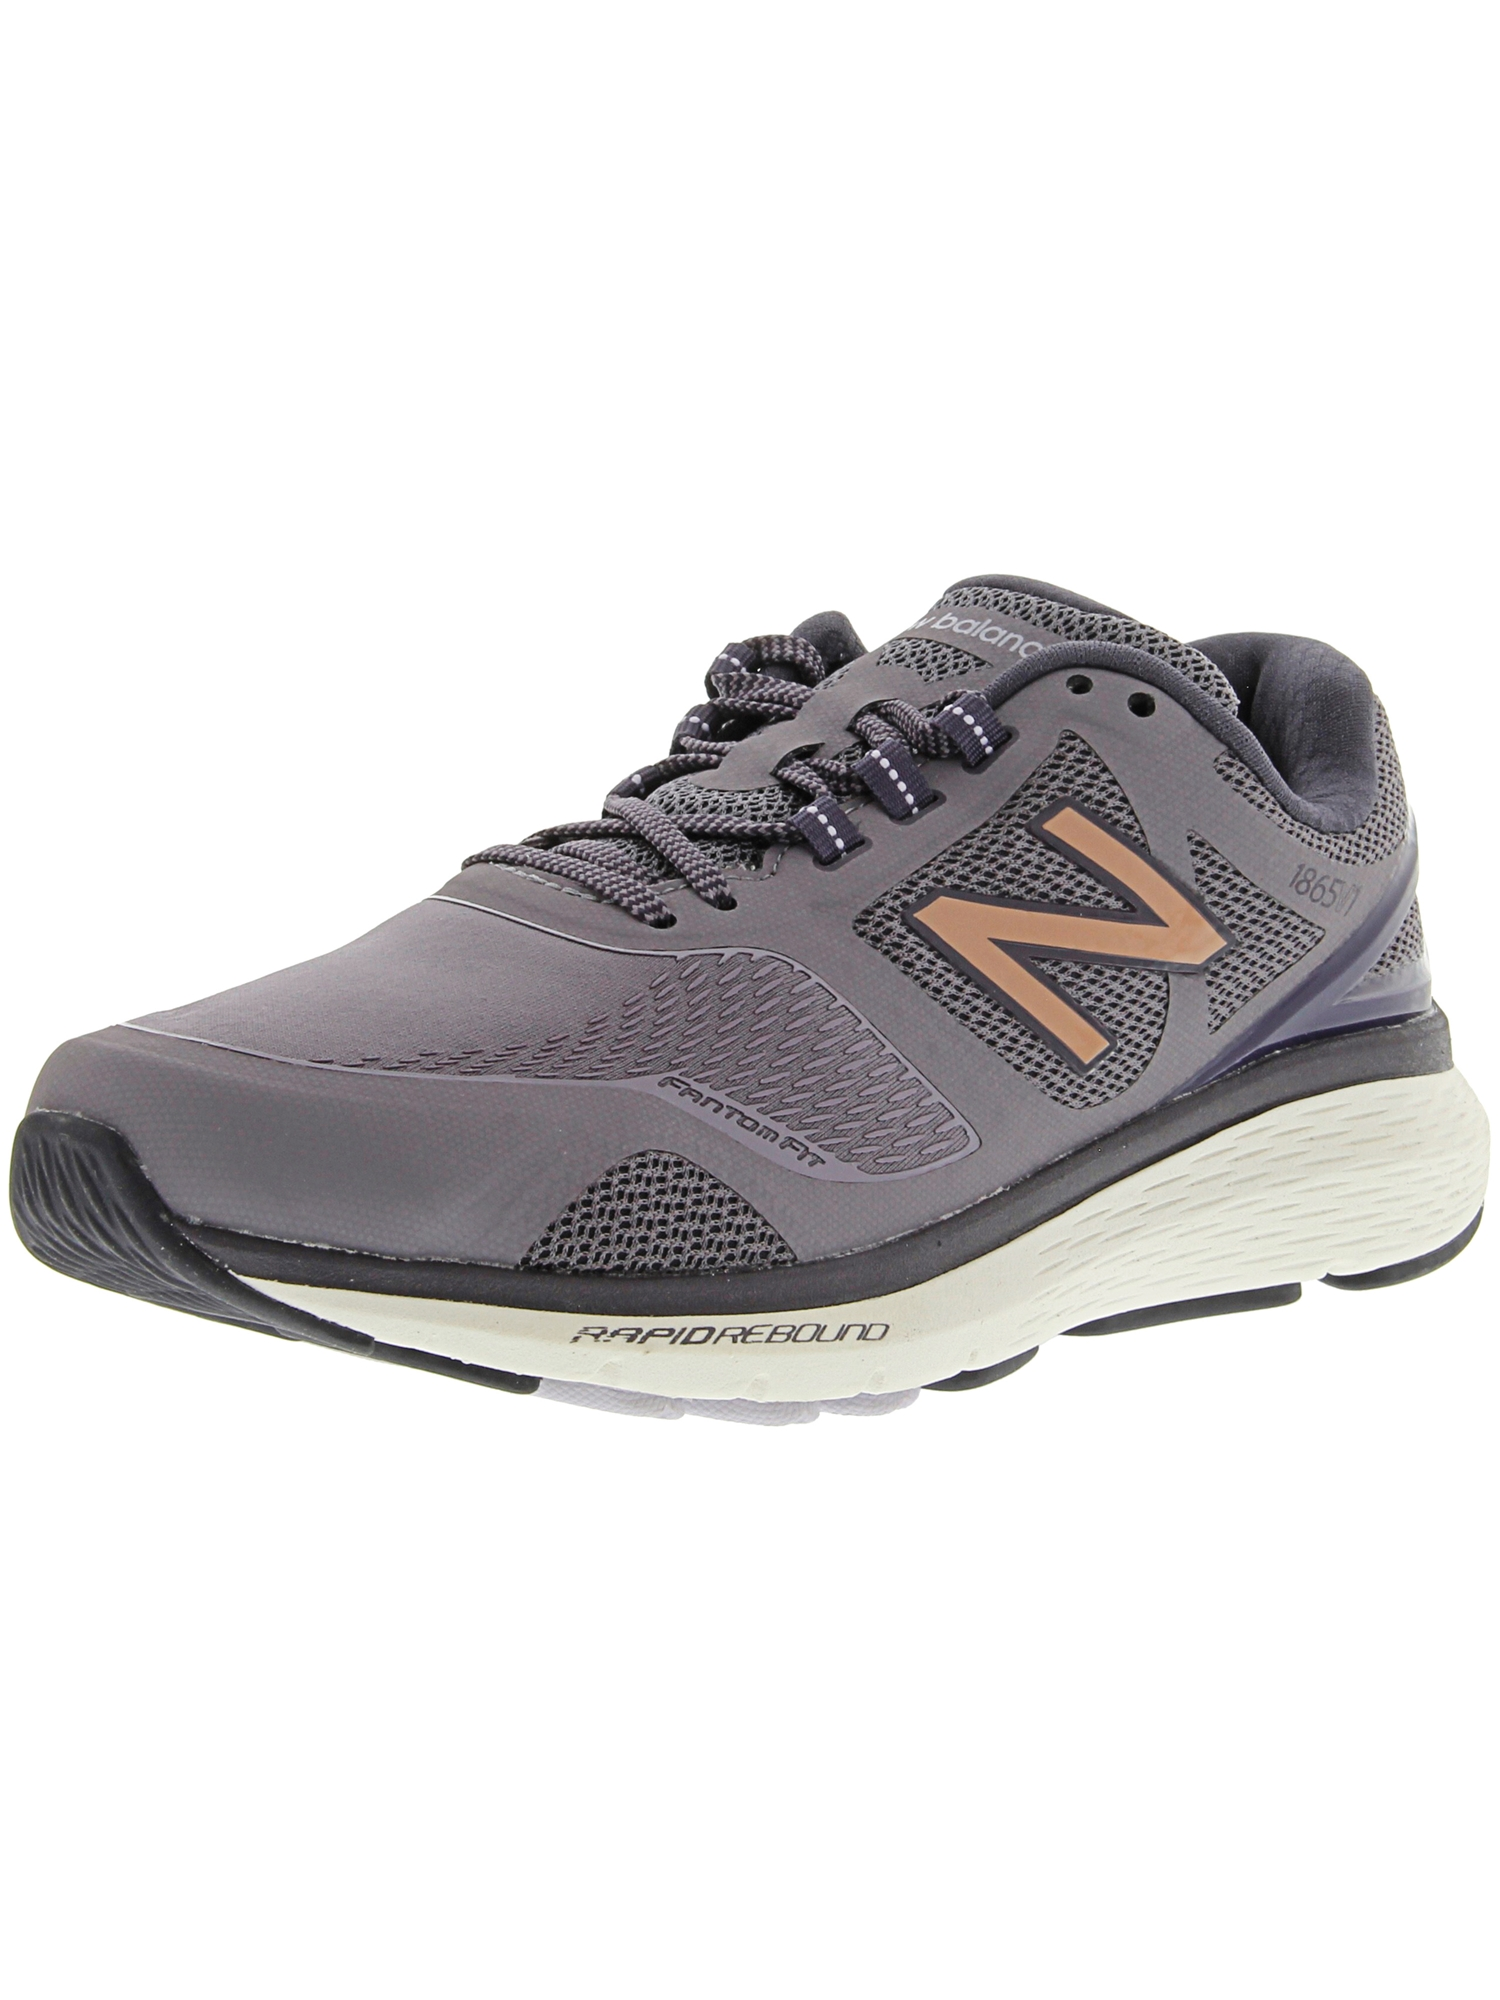 New Balance Women's Ww1865 Pr Ankle-High Walking Shoe - 7WW